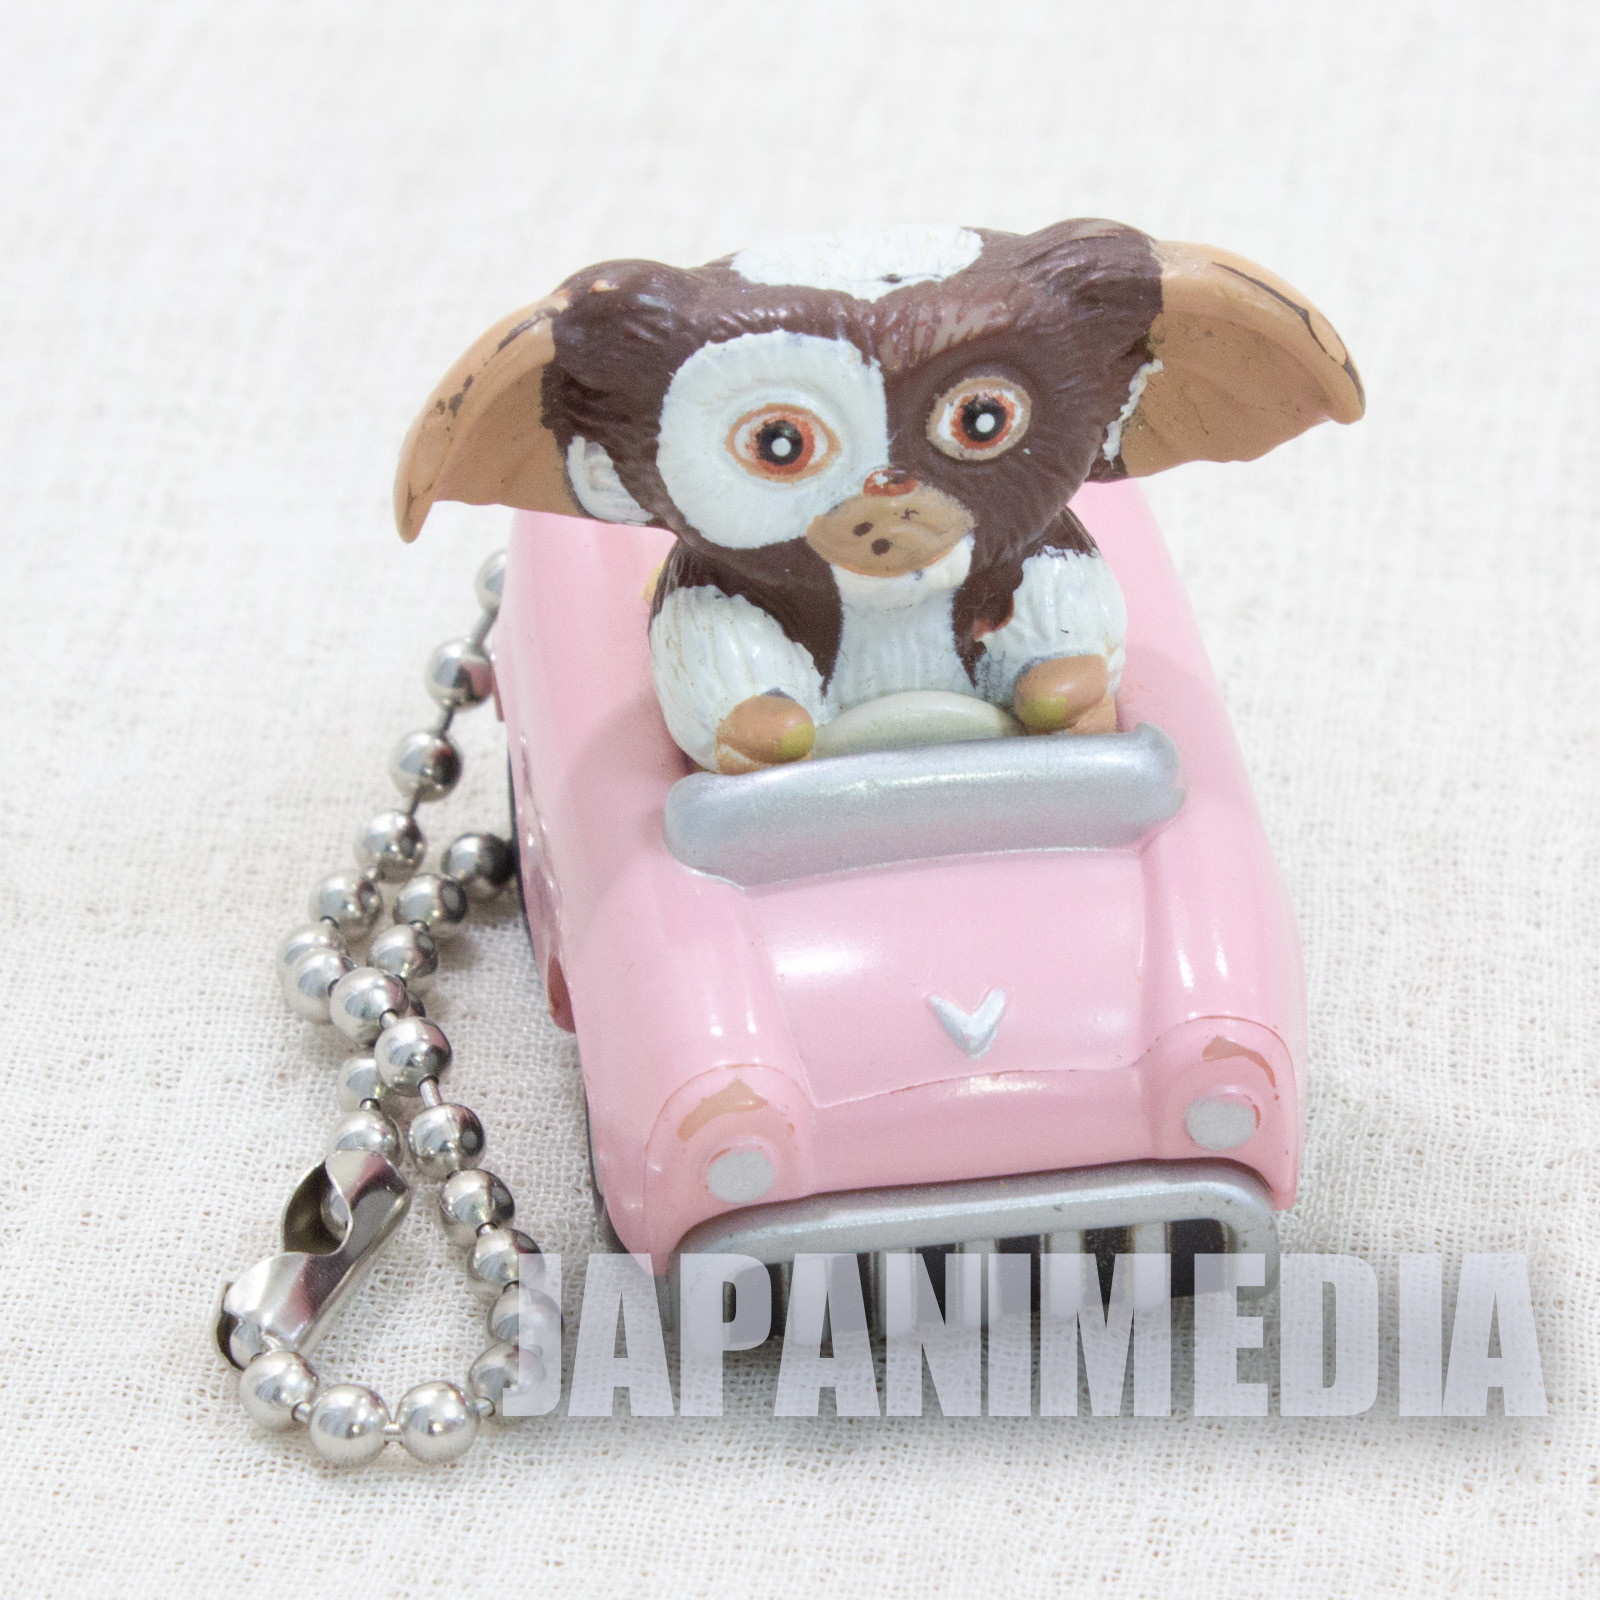 Gremlins Gizmo on Car Mascot Figure Ballchain JAPAN